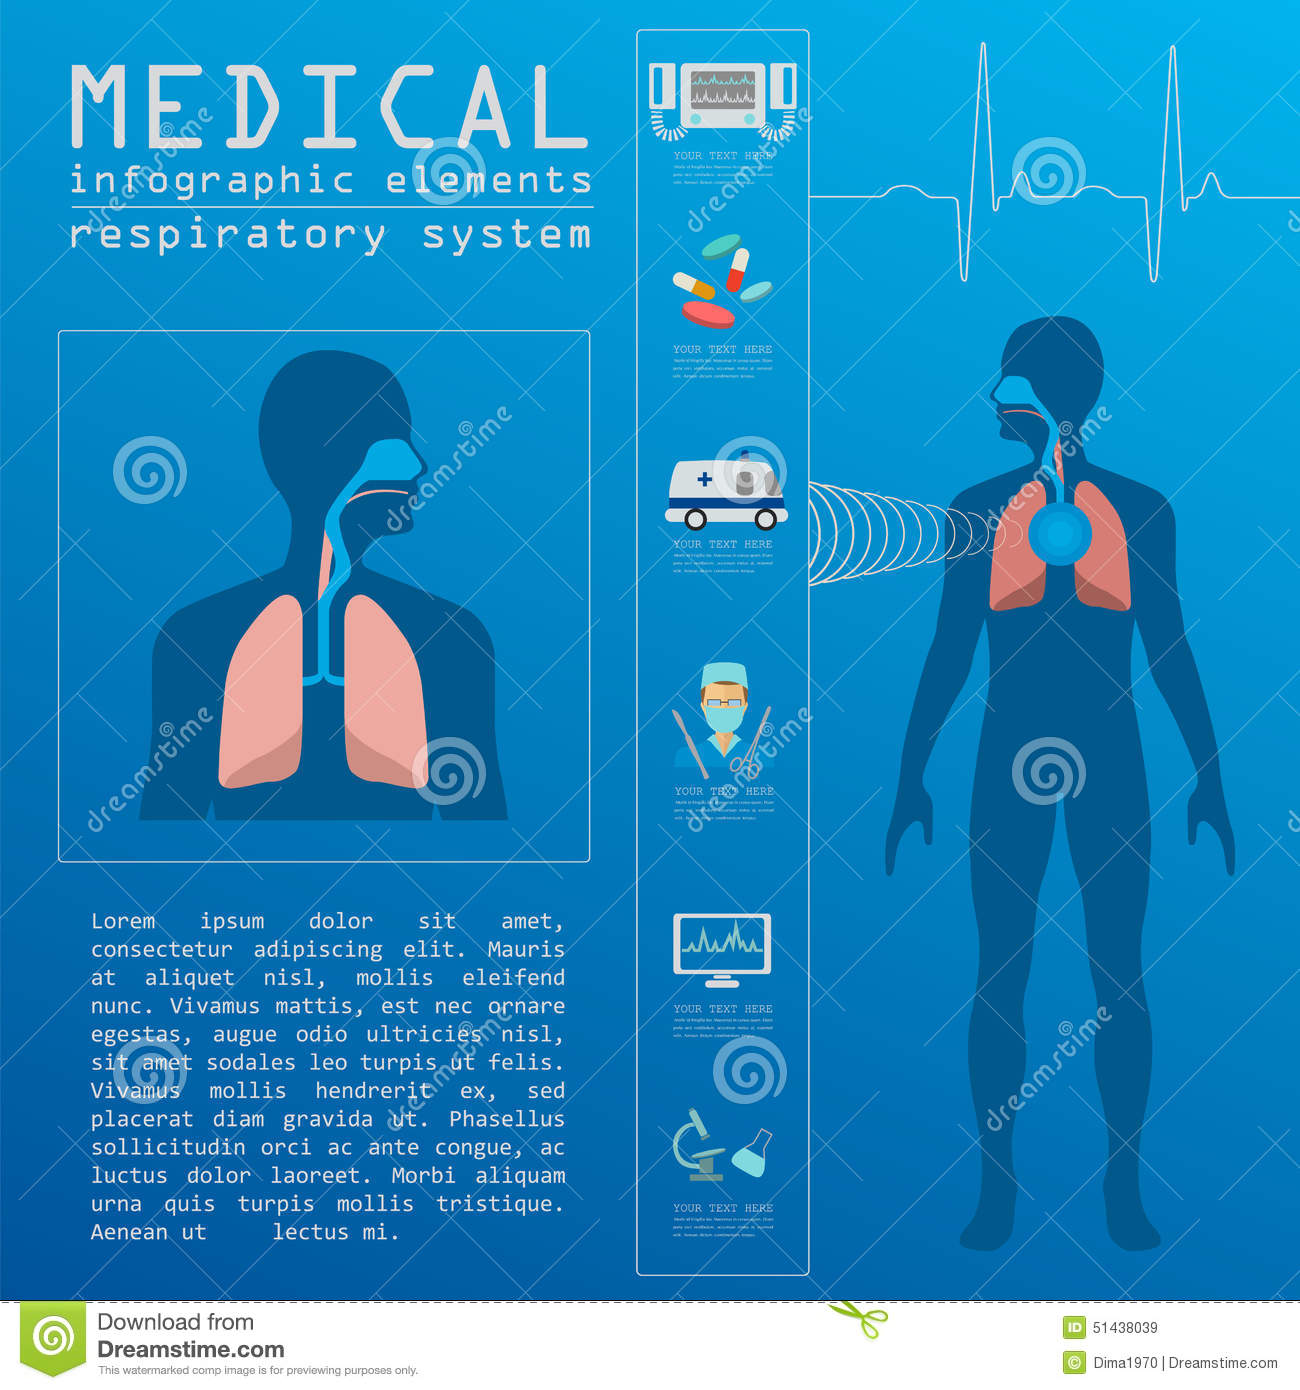 diagram of muscles of the body medical and healthcare infographic respiratory system the body system diagram #10